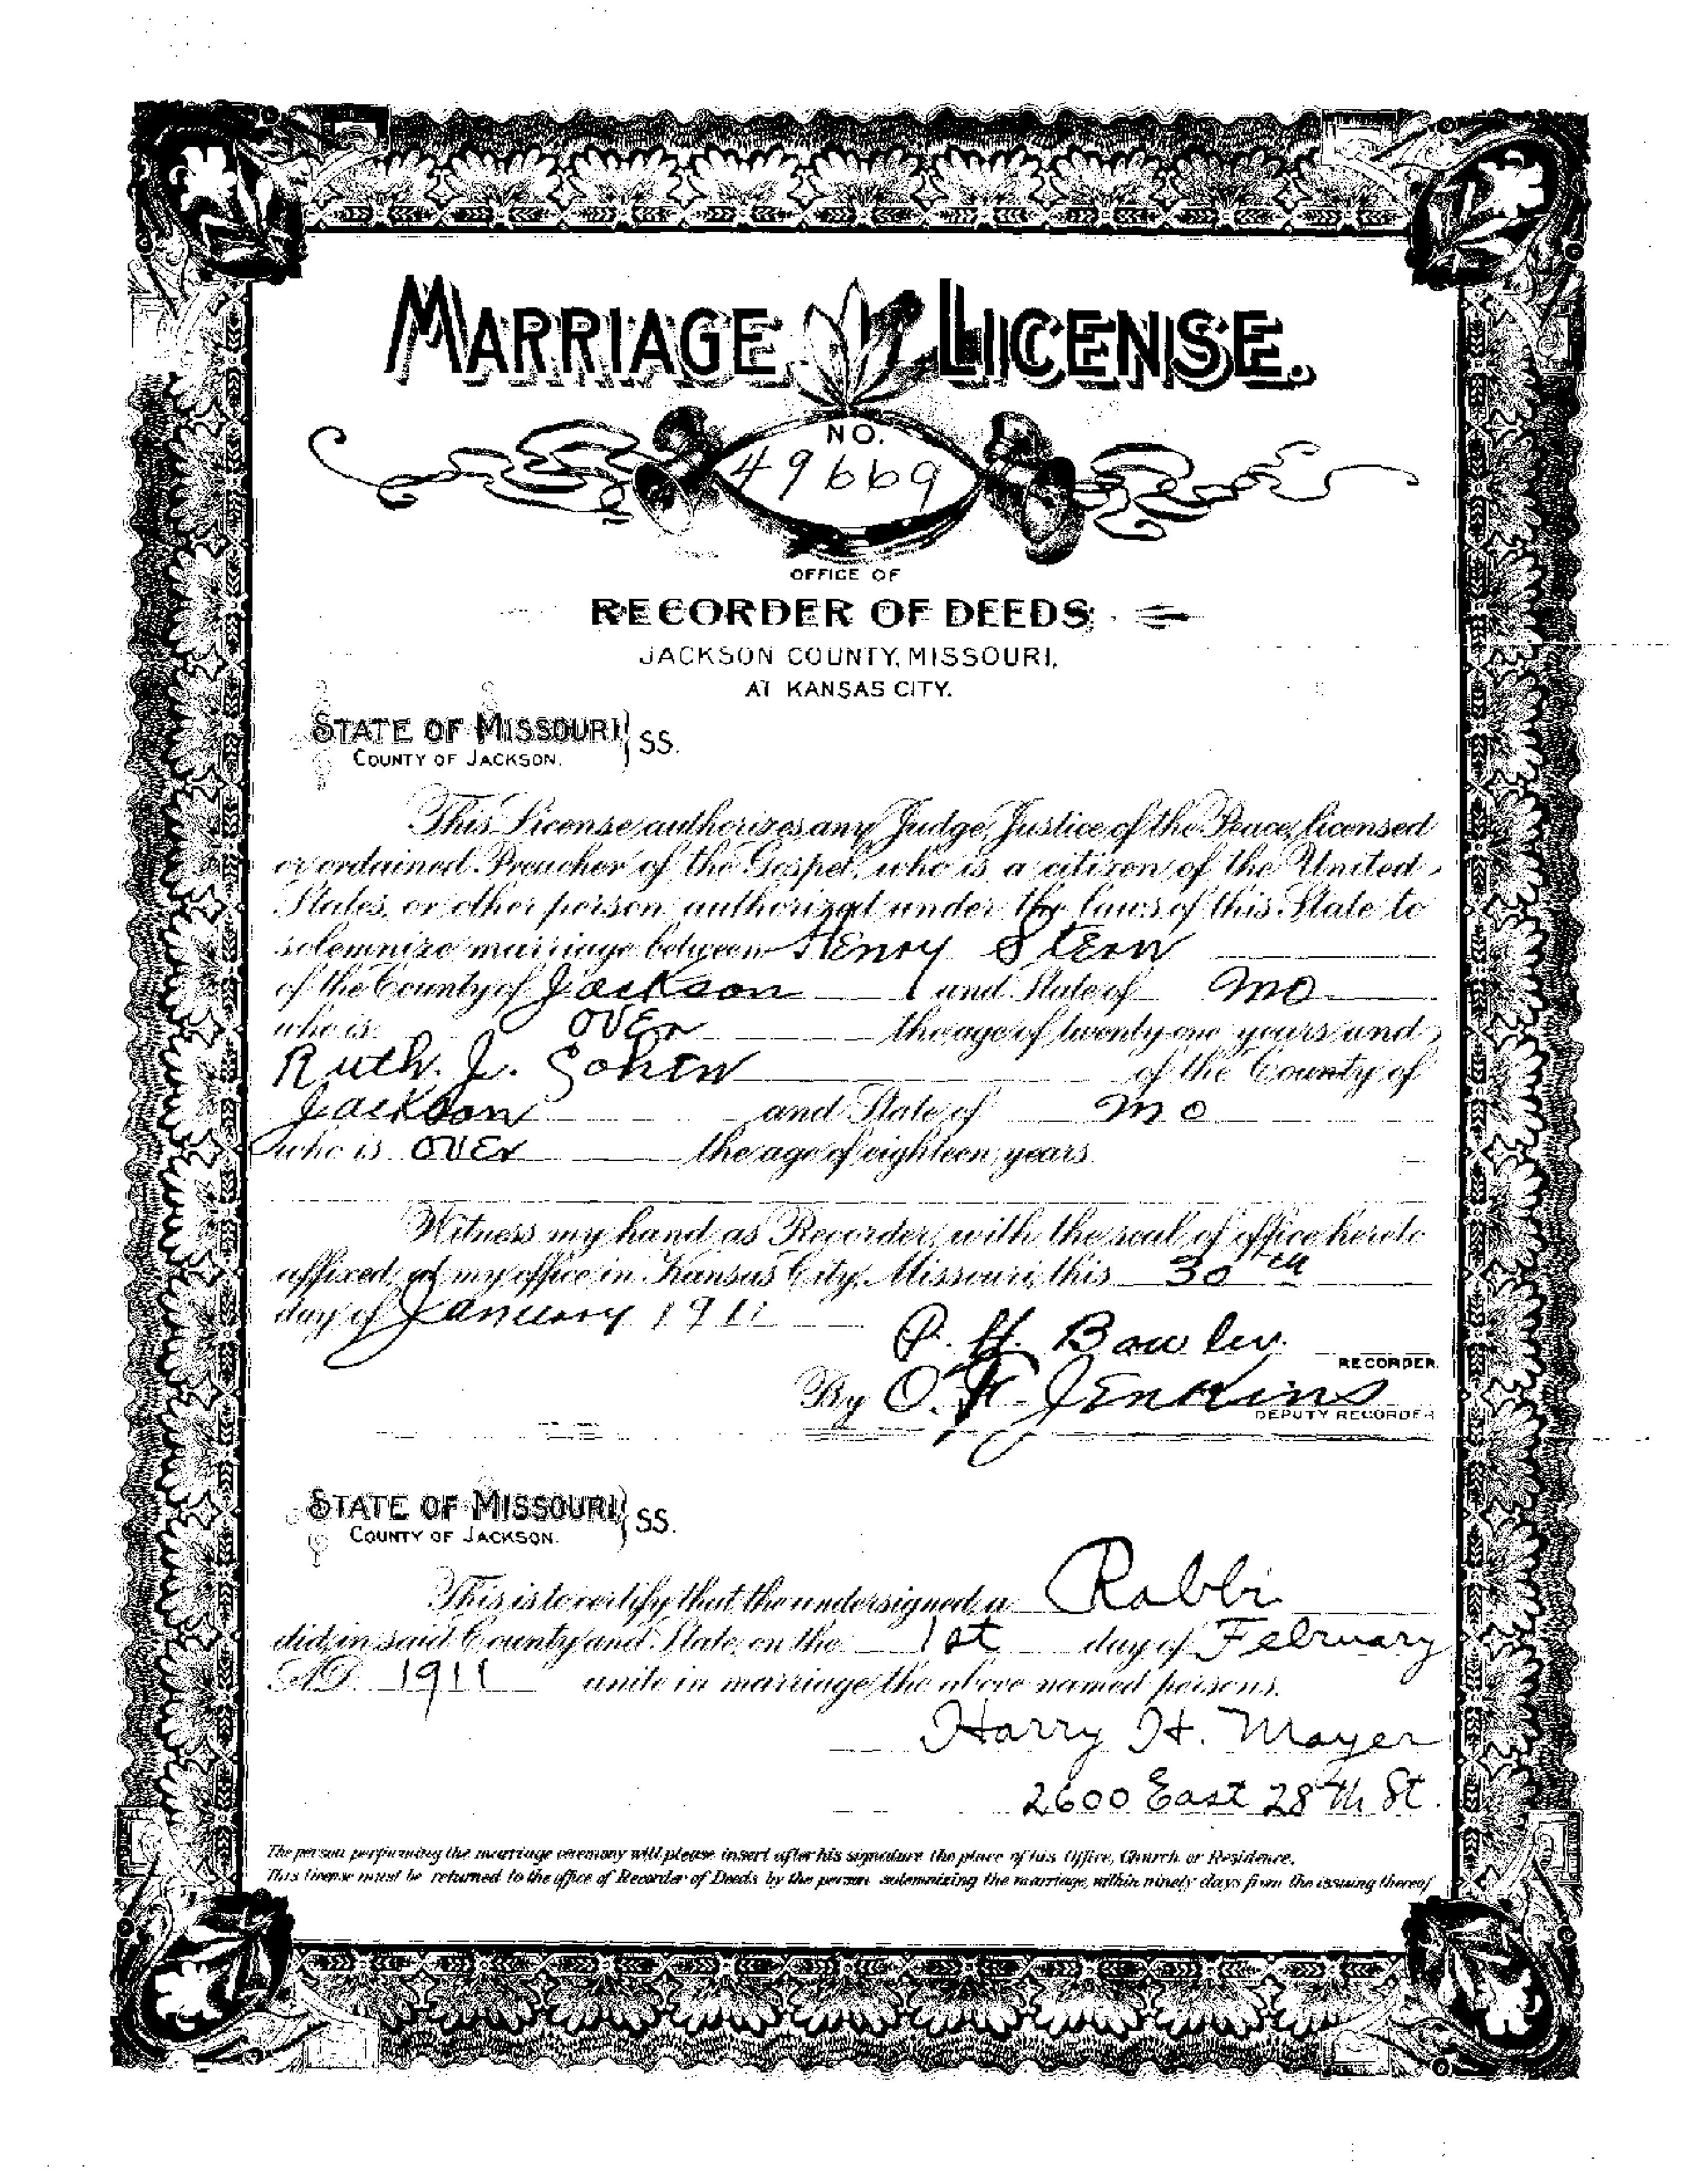 Stern brothers brotmanblog a family journey ruth cohen marriage license page 001 1betcityfo Gallery